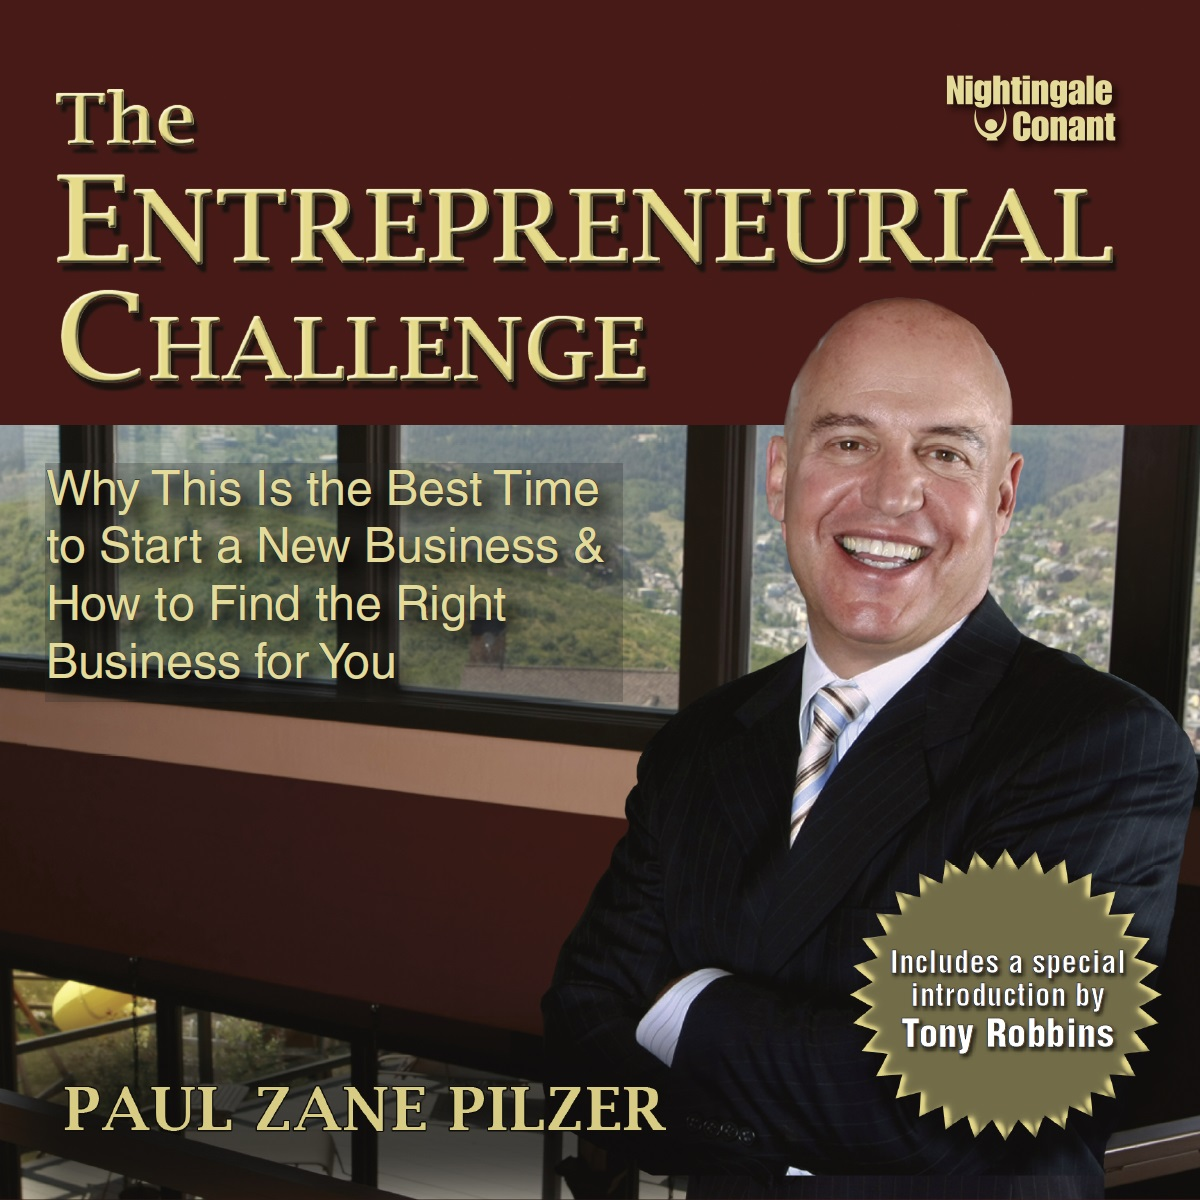 The Entrepreneurial Challenge